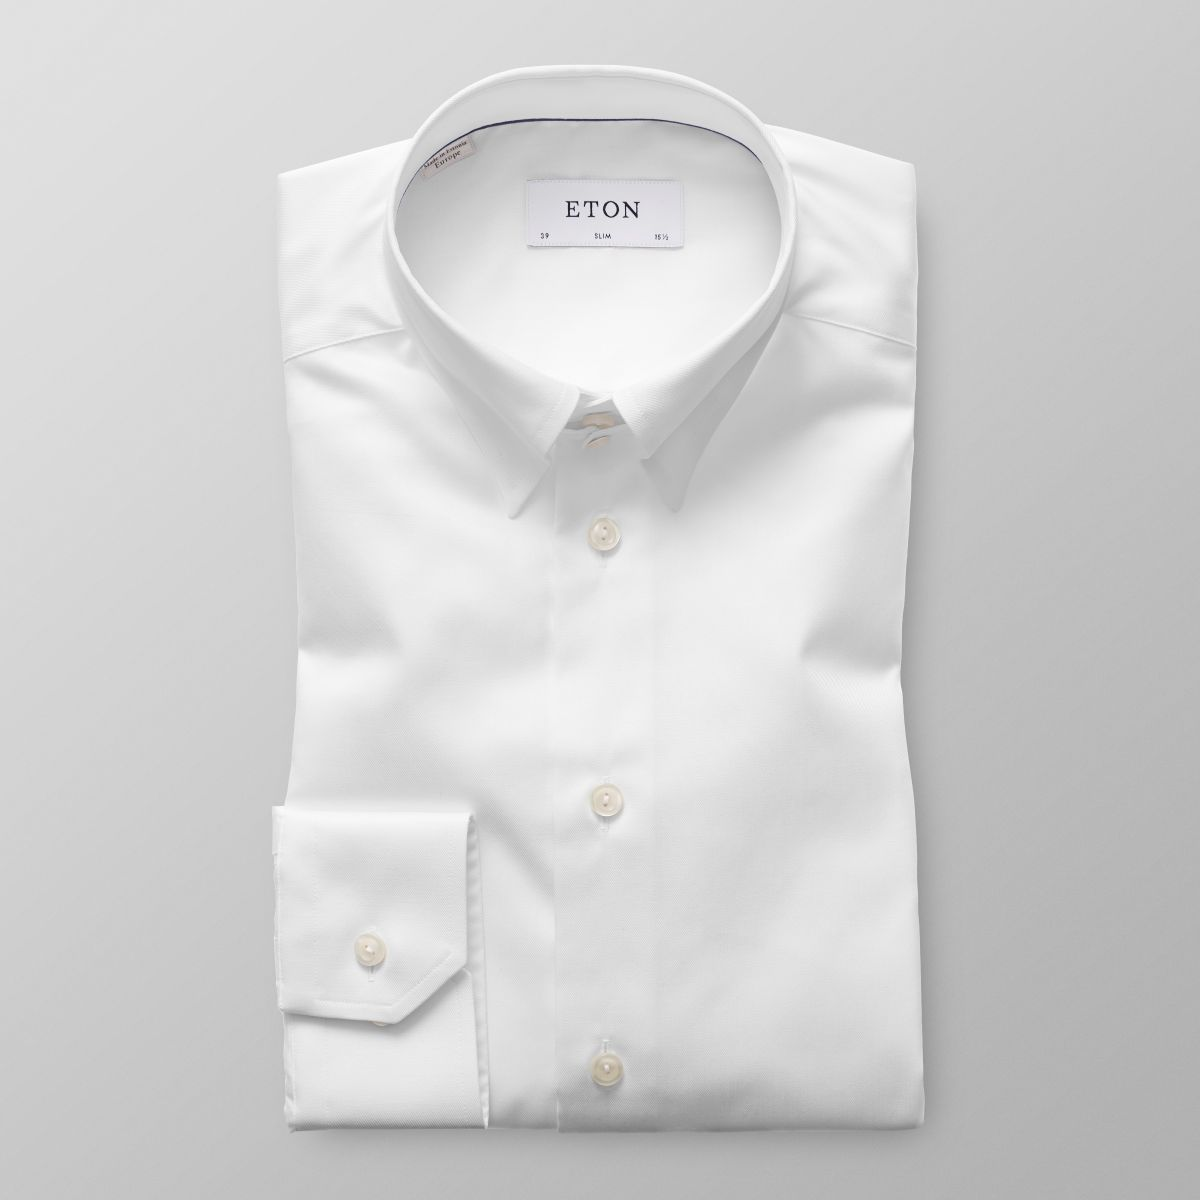 White Tab Collar Shirt Slim Eton Shirts Us